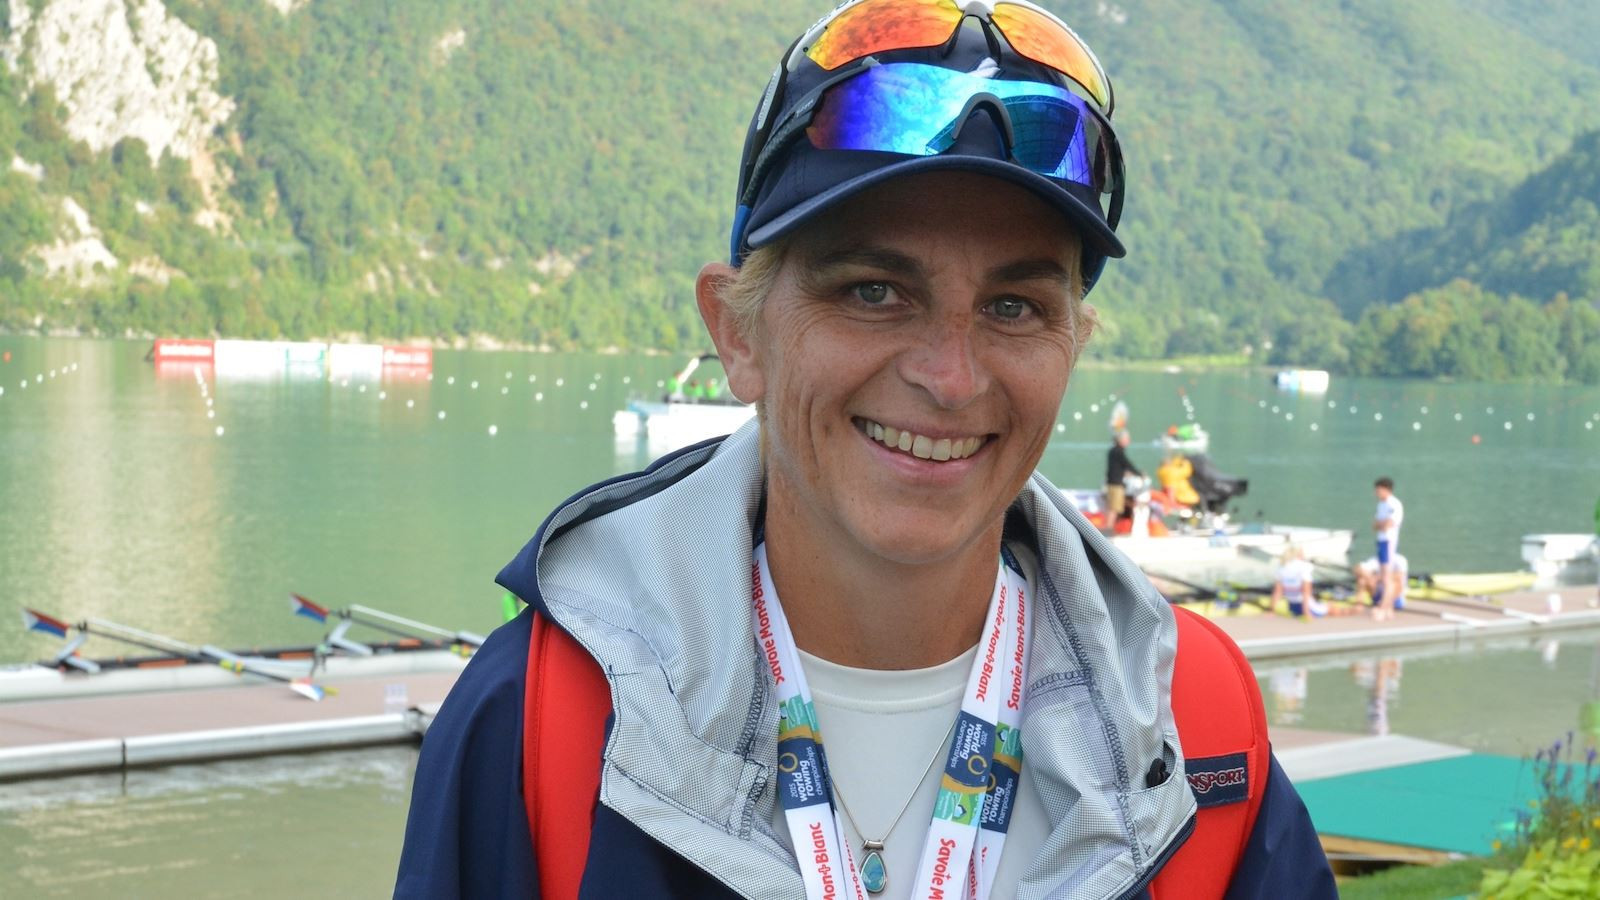 Ellen Minzner is now the full-time director of Para high performance at USRowing ©USRowing